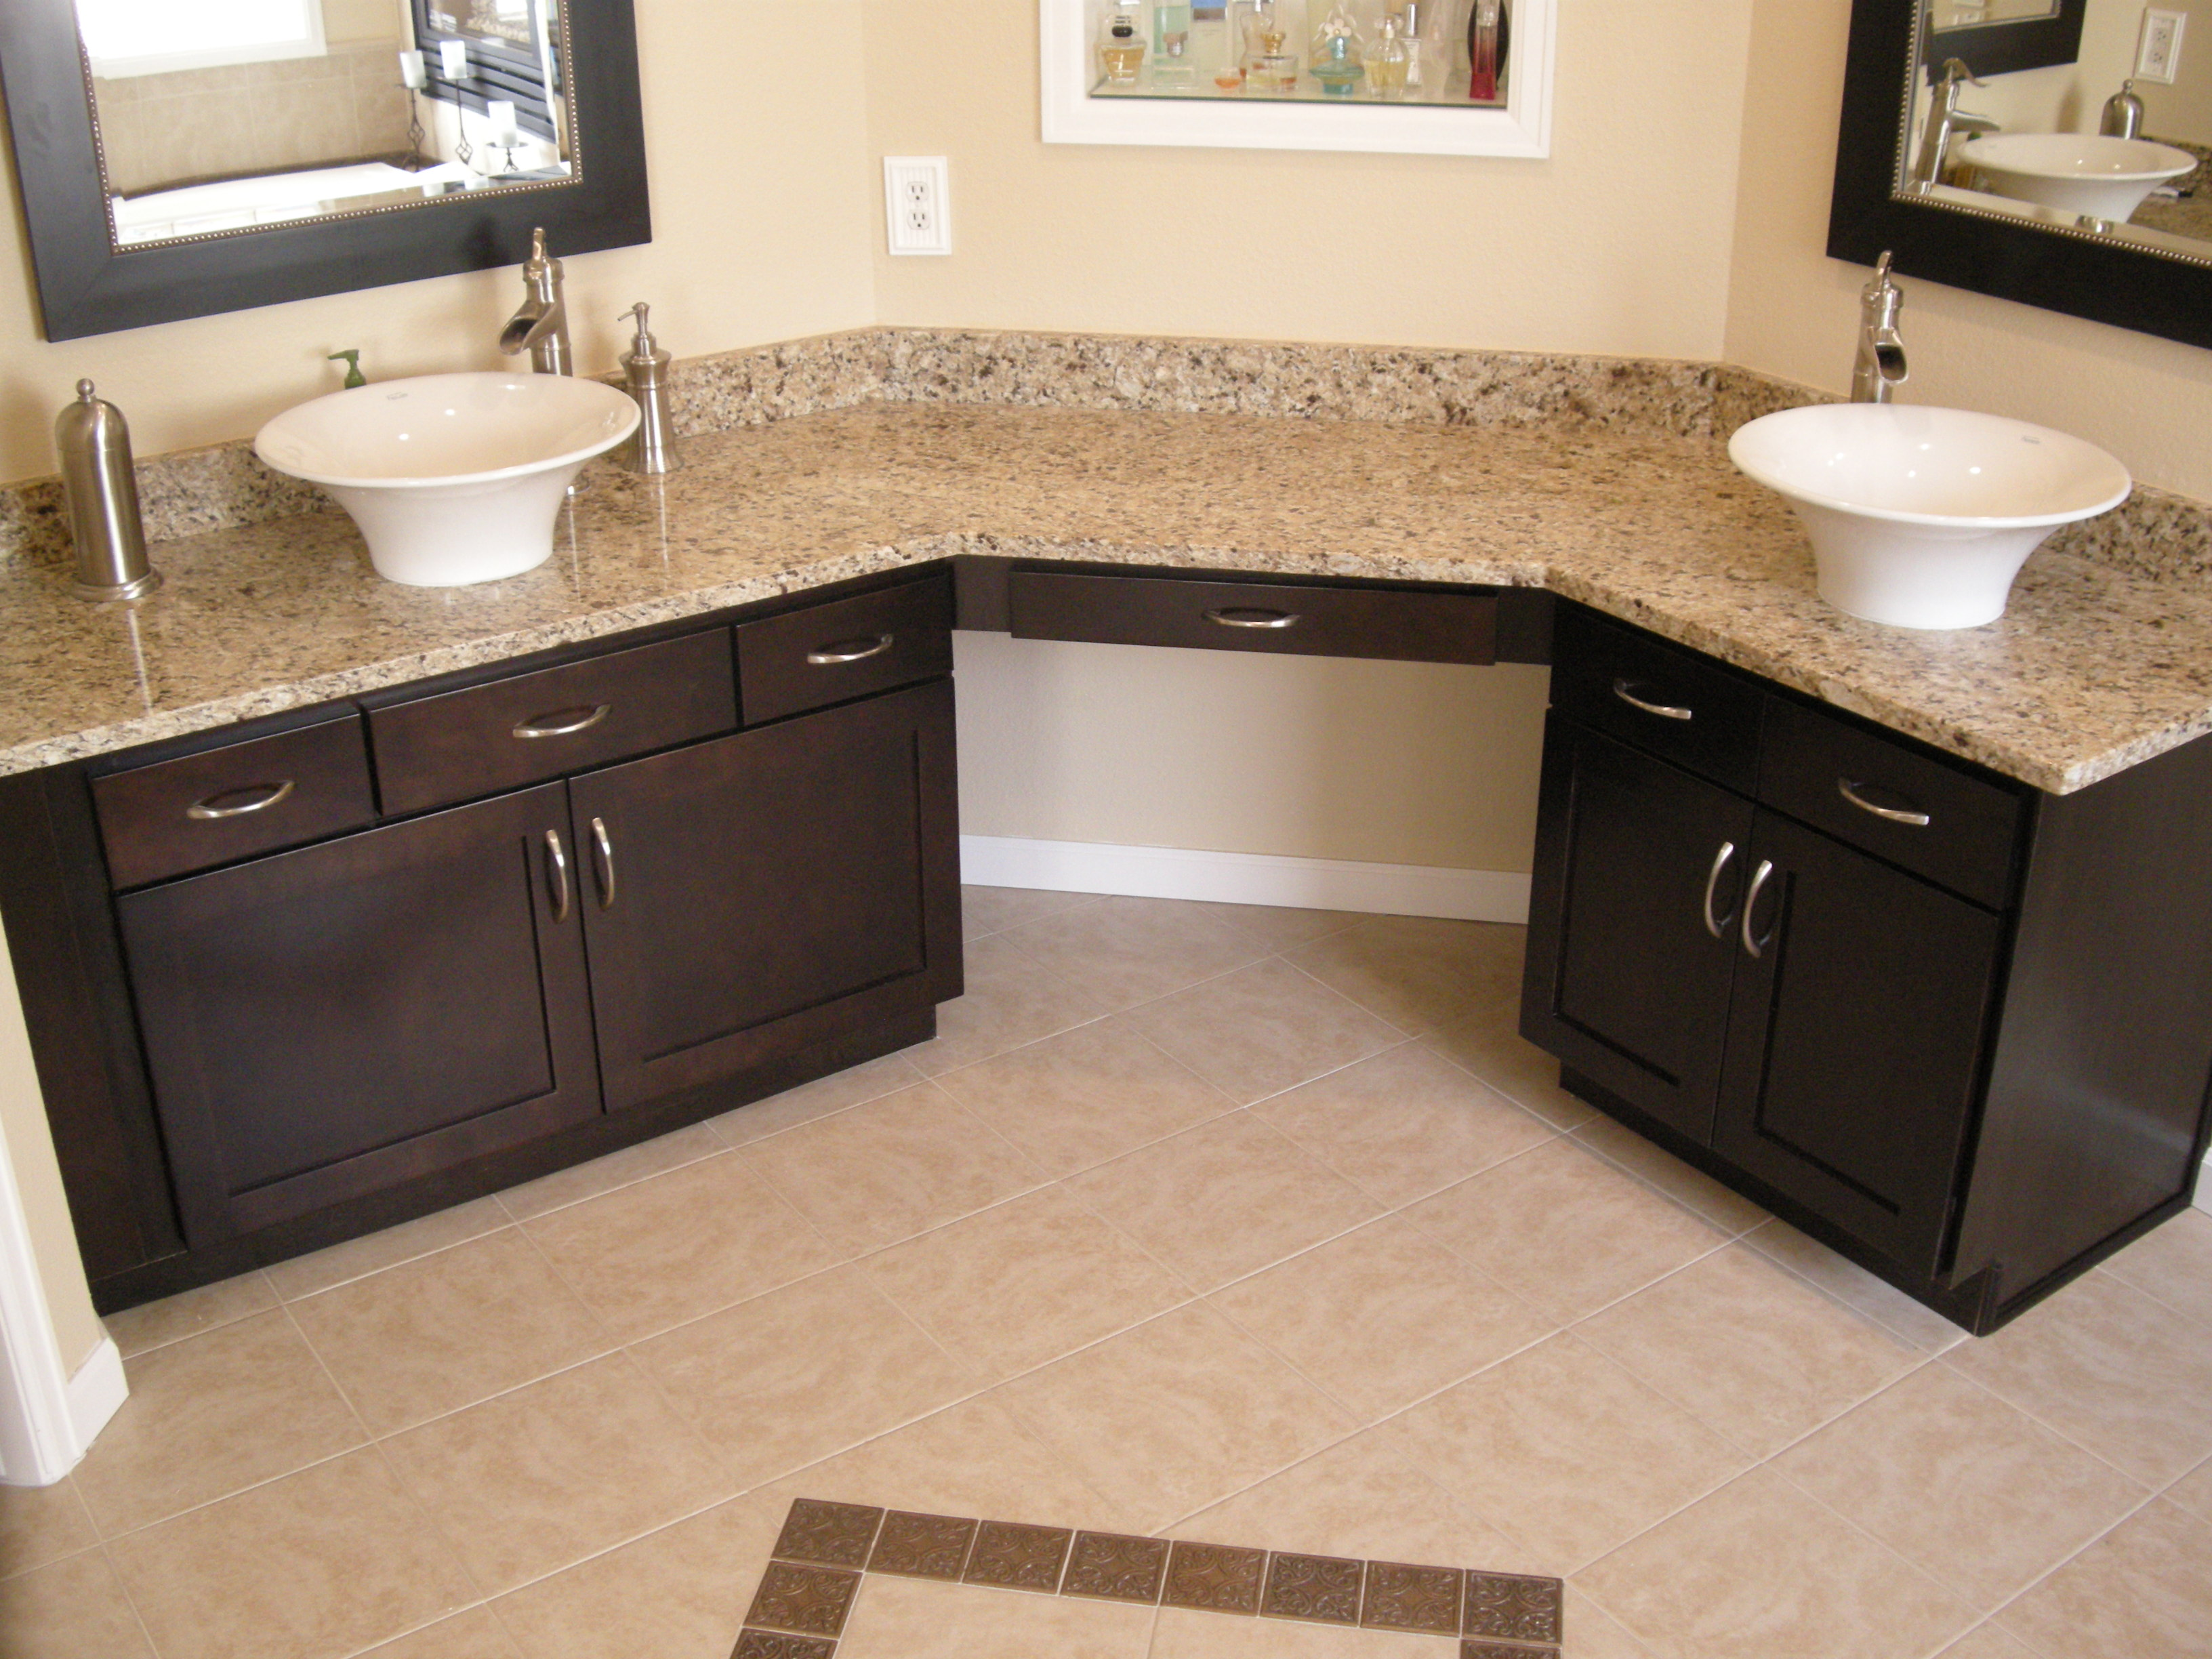 Cabinet Refacing Example